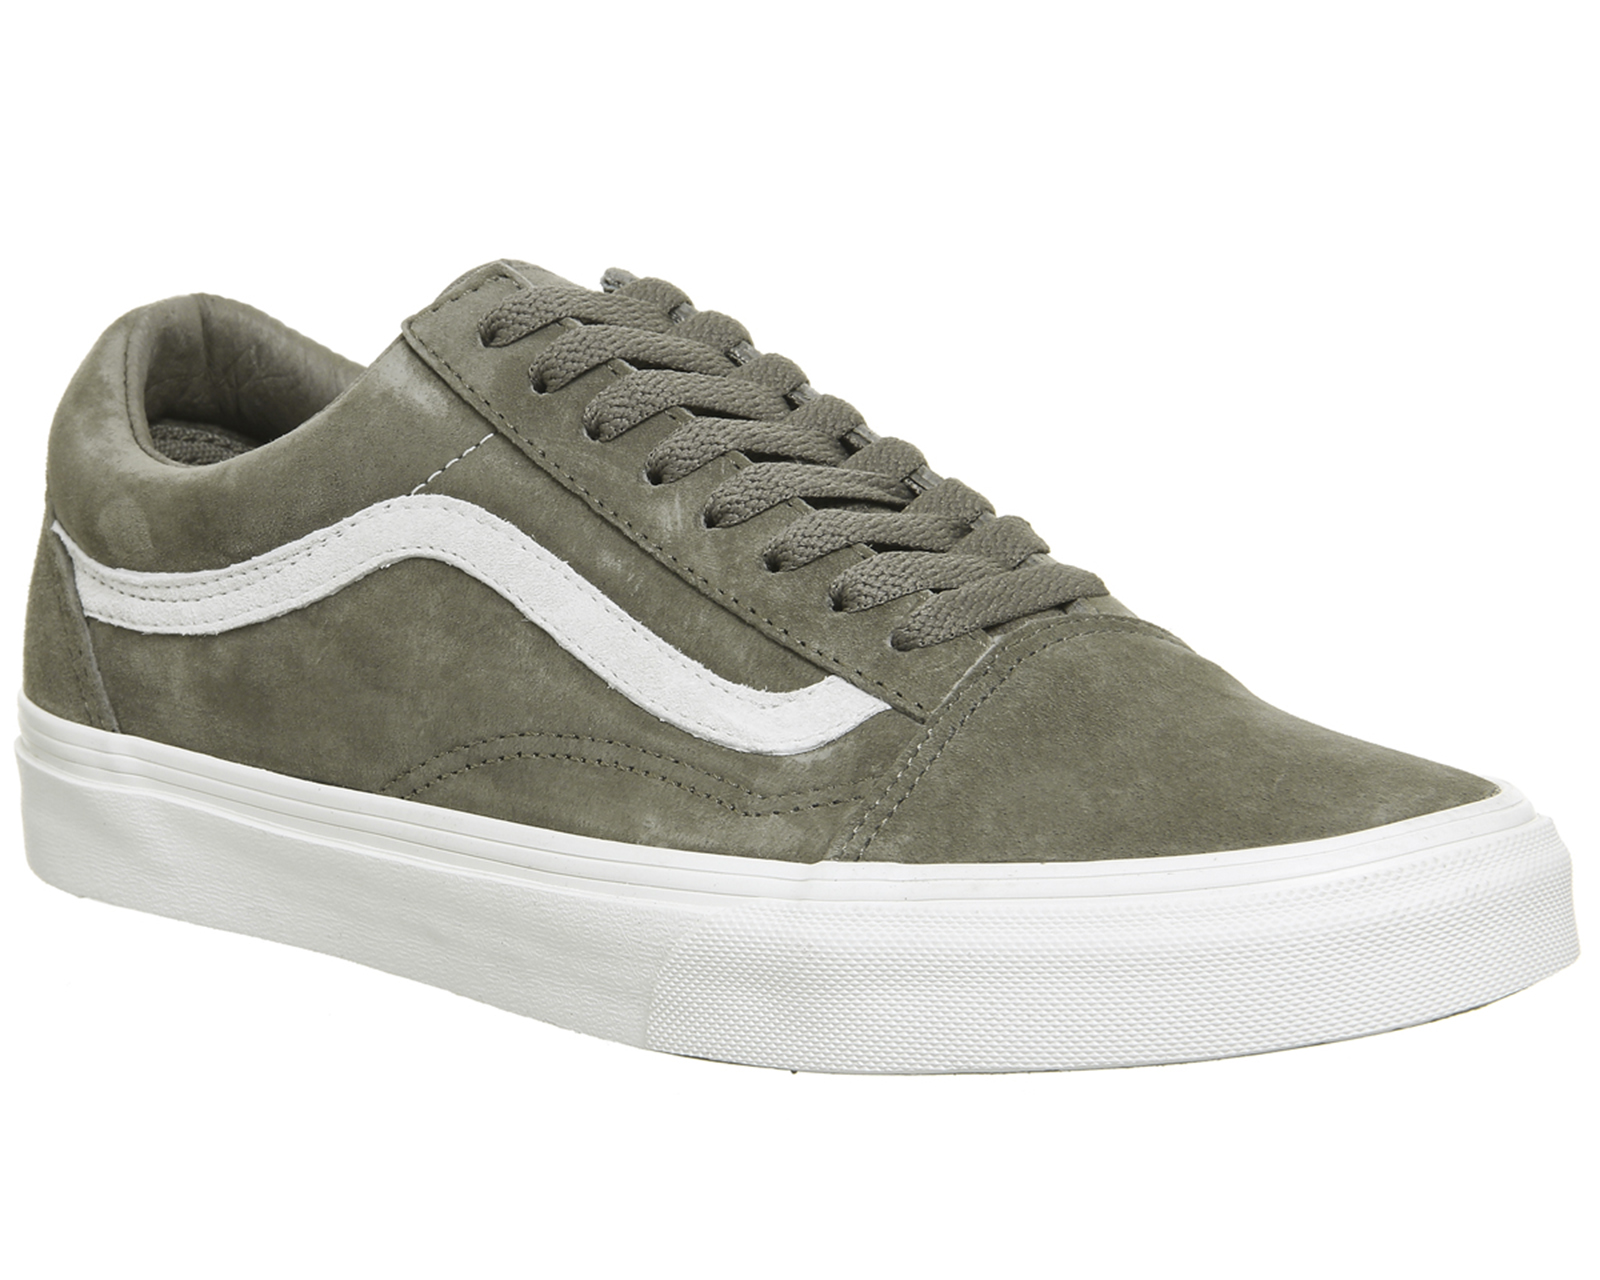 af04ab98a9 Sentinel Mens Vans Old Skool Trainers FALLEN ROCK BLANC Trainers Shoes